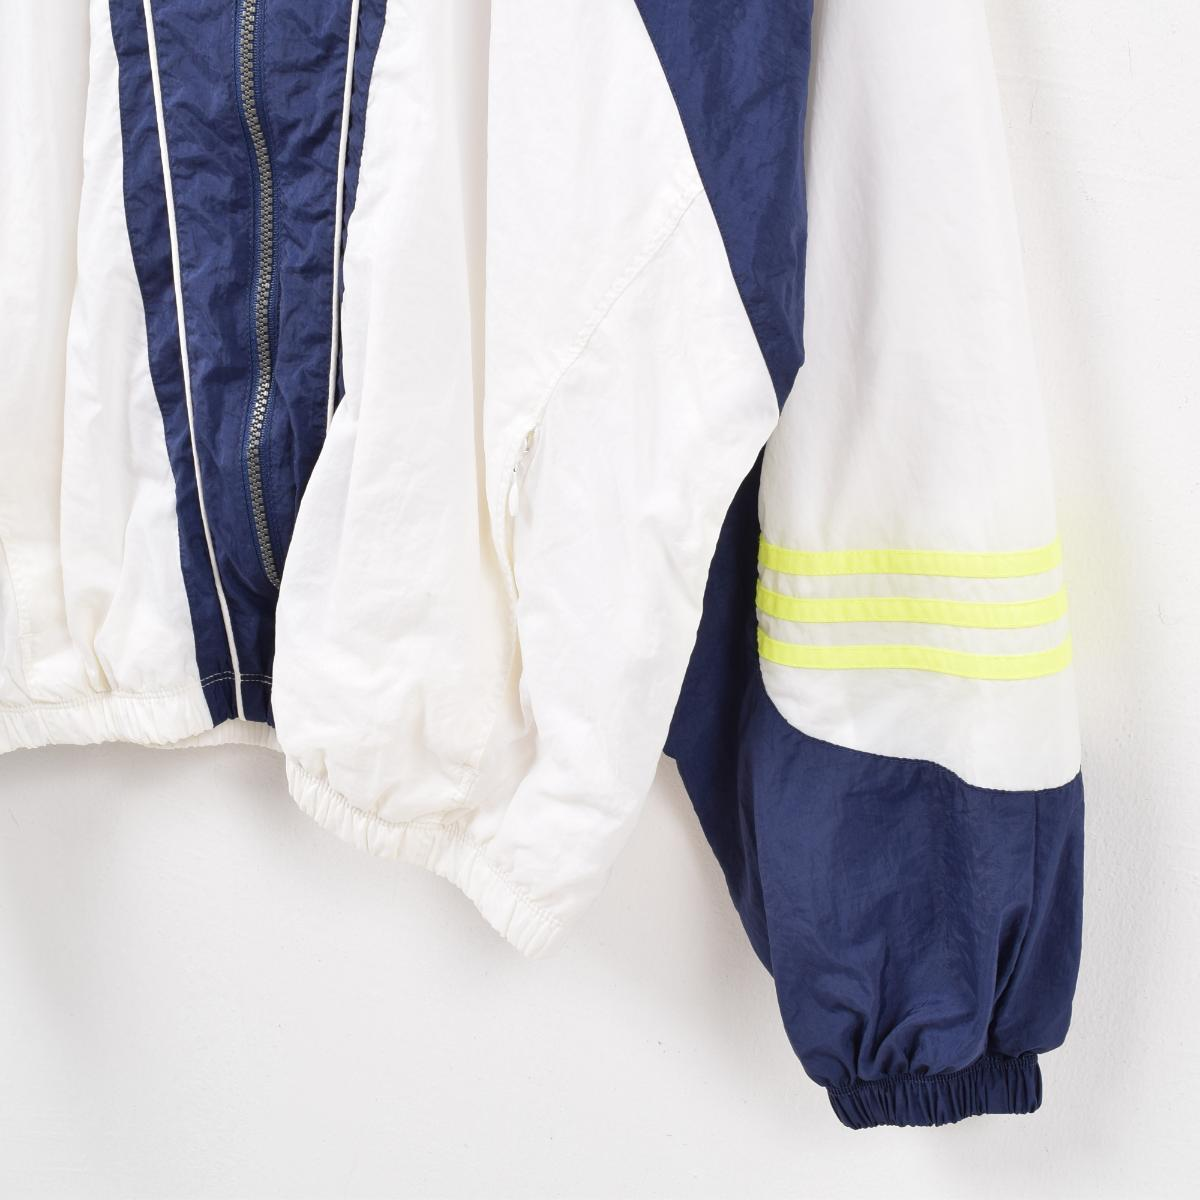 90s Adidas adidas nylon jacket men M wbb1410